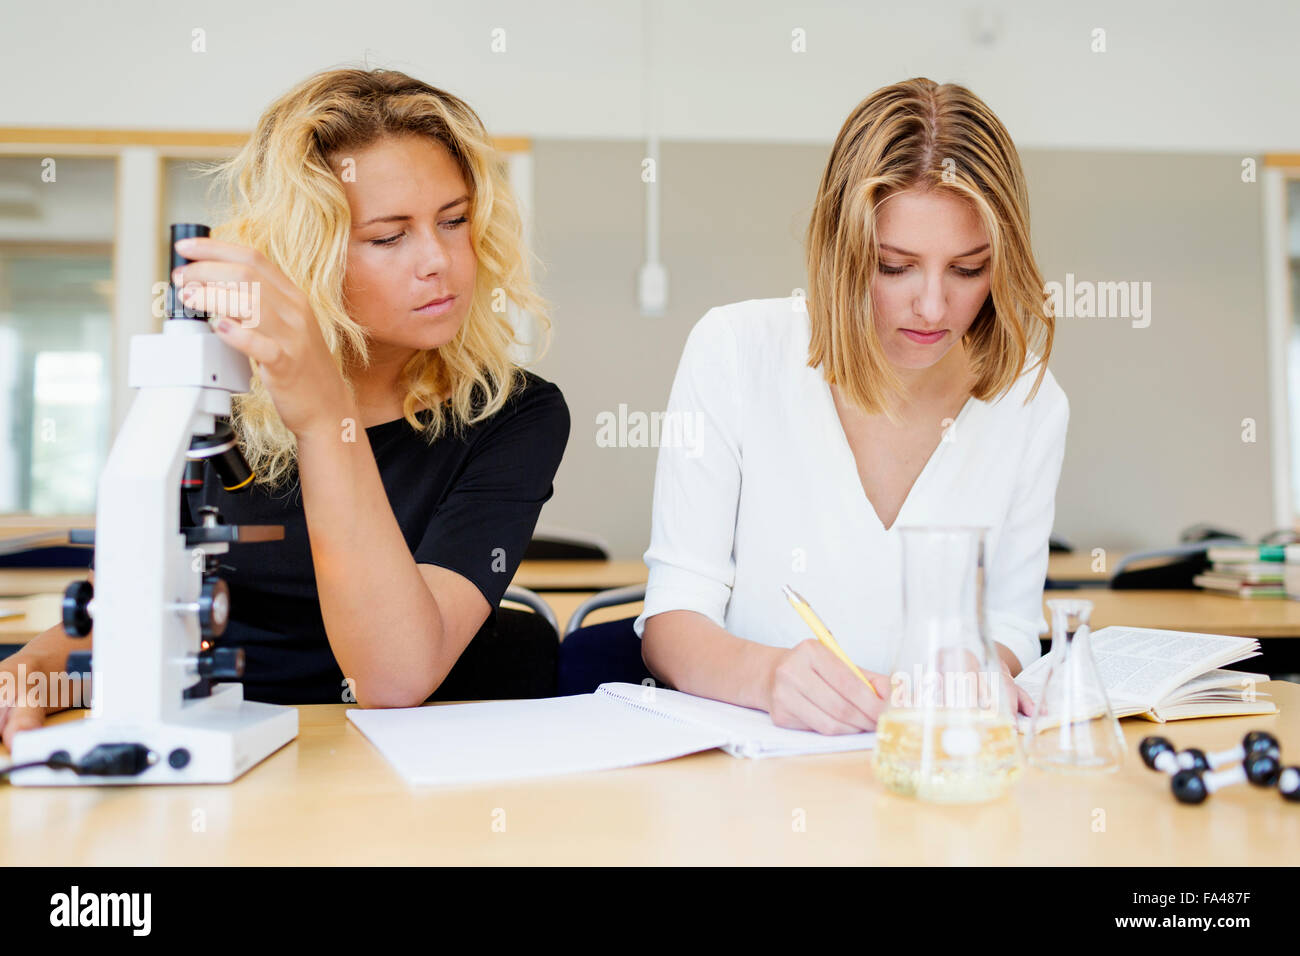 Science student using microscope while classmate writing in book at laboratory - Stock Image